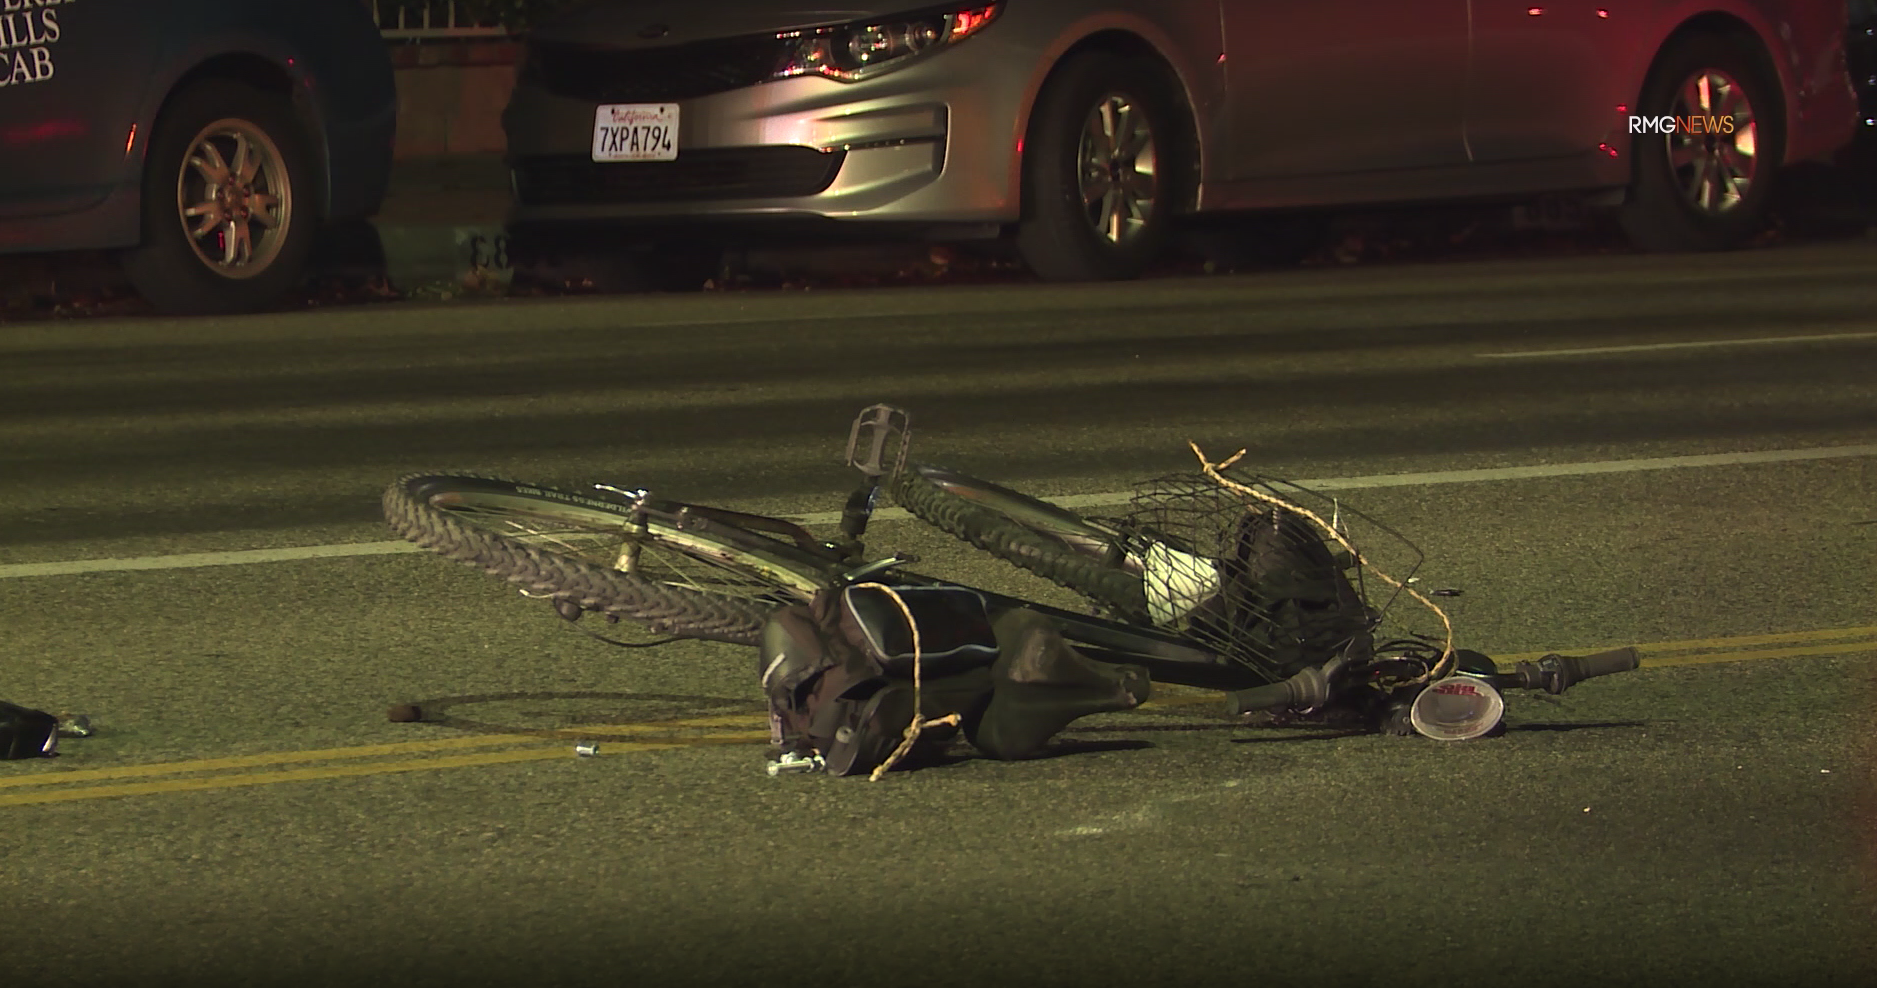 A bicycle lays on the ground at the scene of a fatal hit-and-run collision in North Hills on Oct. 18, 2019. (Credit: RMG News)